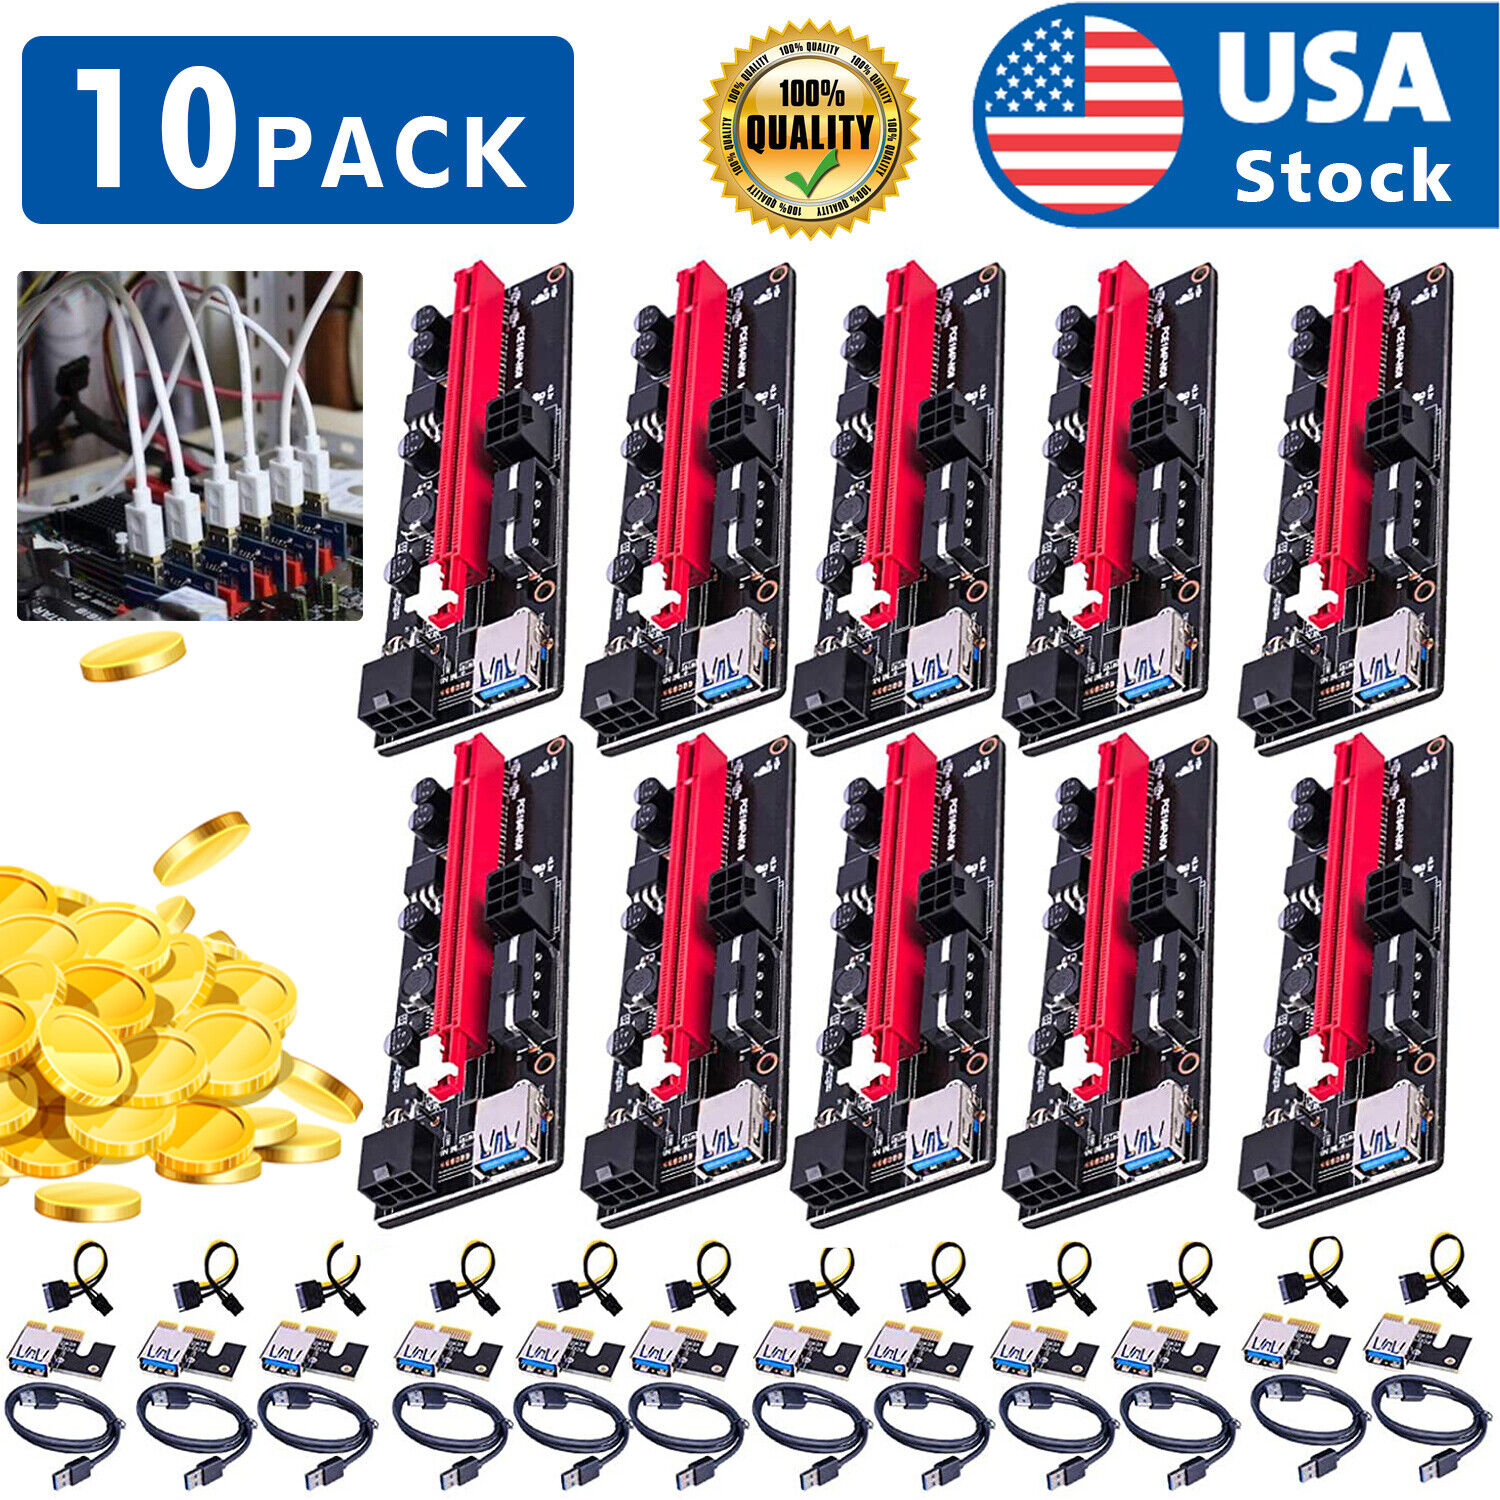 10PACK PCI-E 1x to 16x Powered USB3.0 GPU Riser Extender Adapter Card VER 009s Computer Cables & Connectors